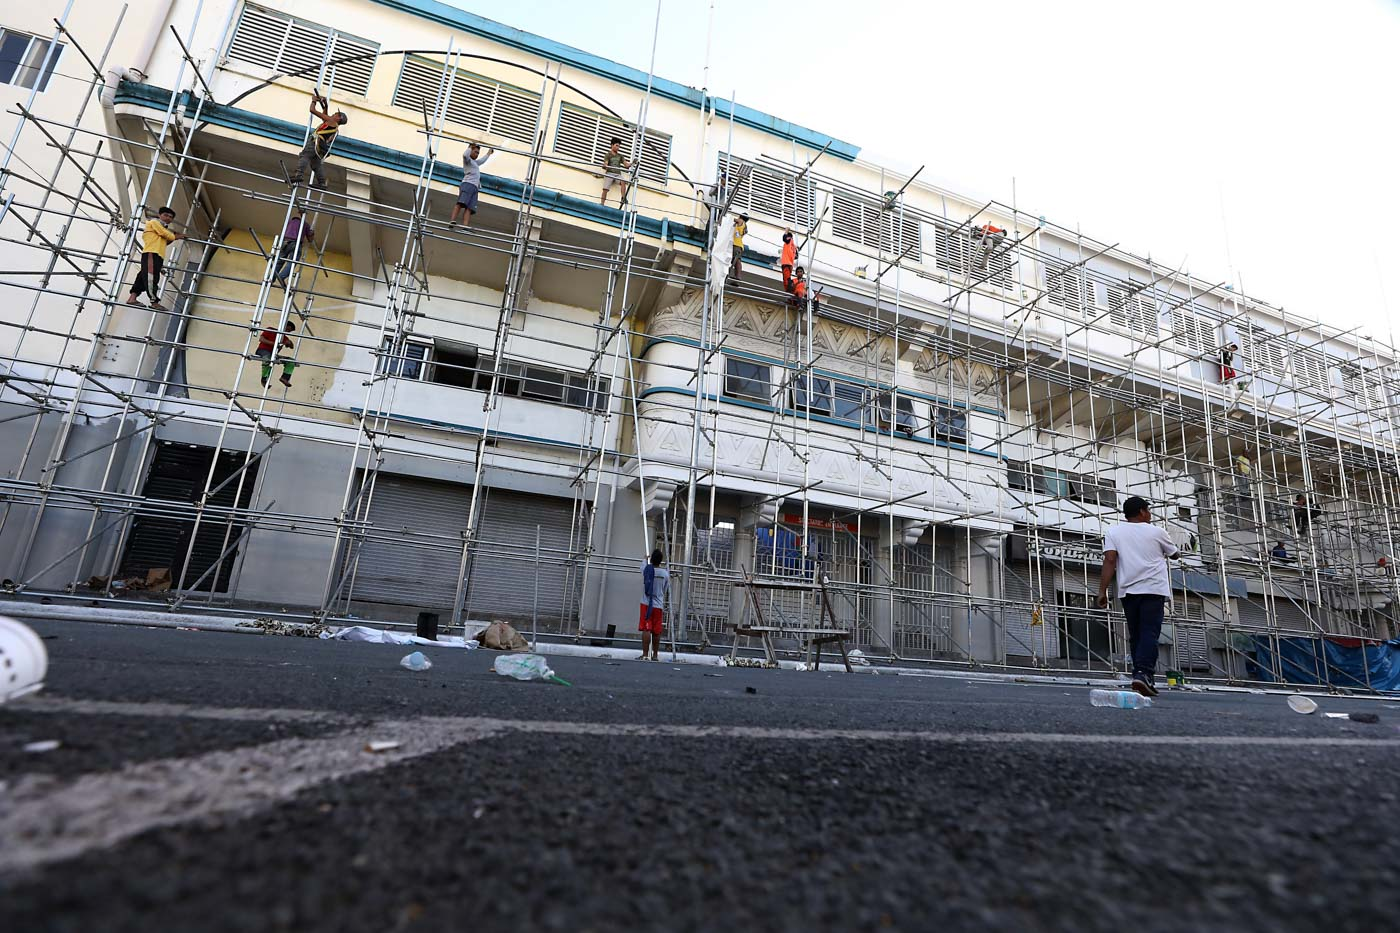 RACE AGAINST TIME. Renovation of some parts of the Rizal Memorial Stadium has yet to be completed. Photo by Ben Nabong/Rappler